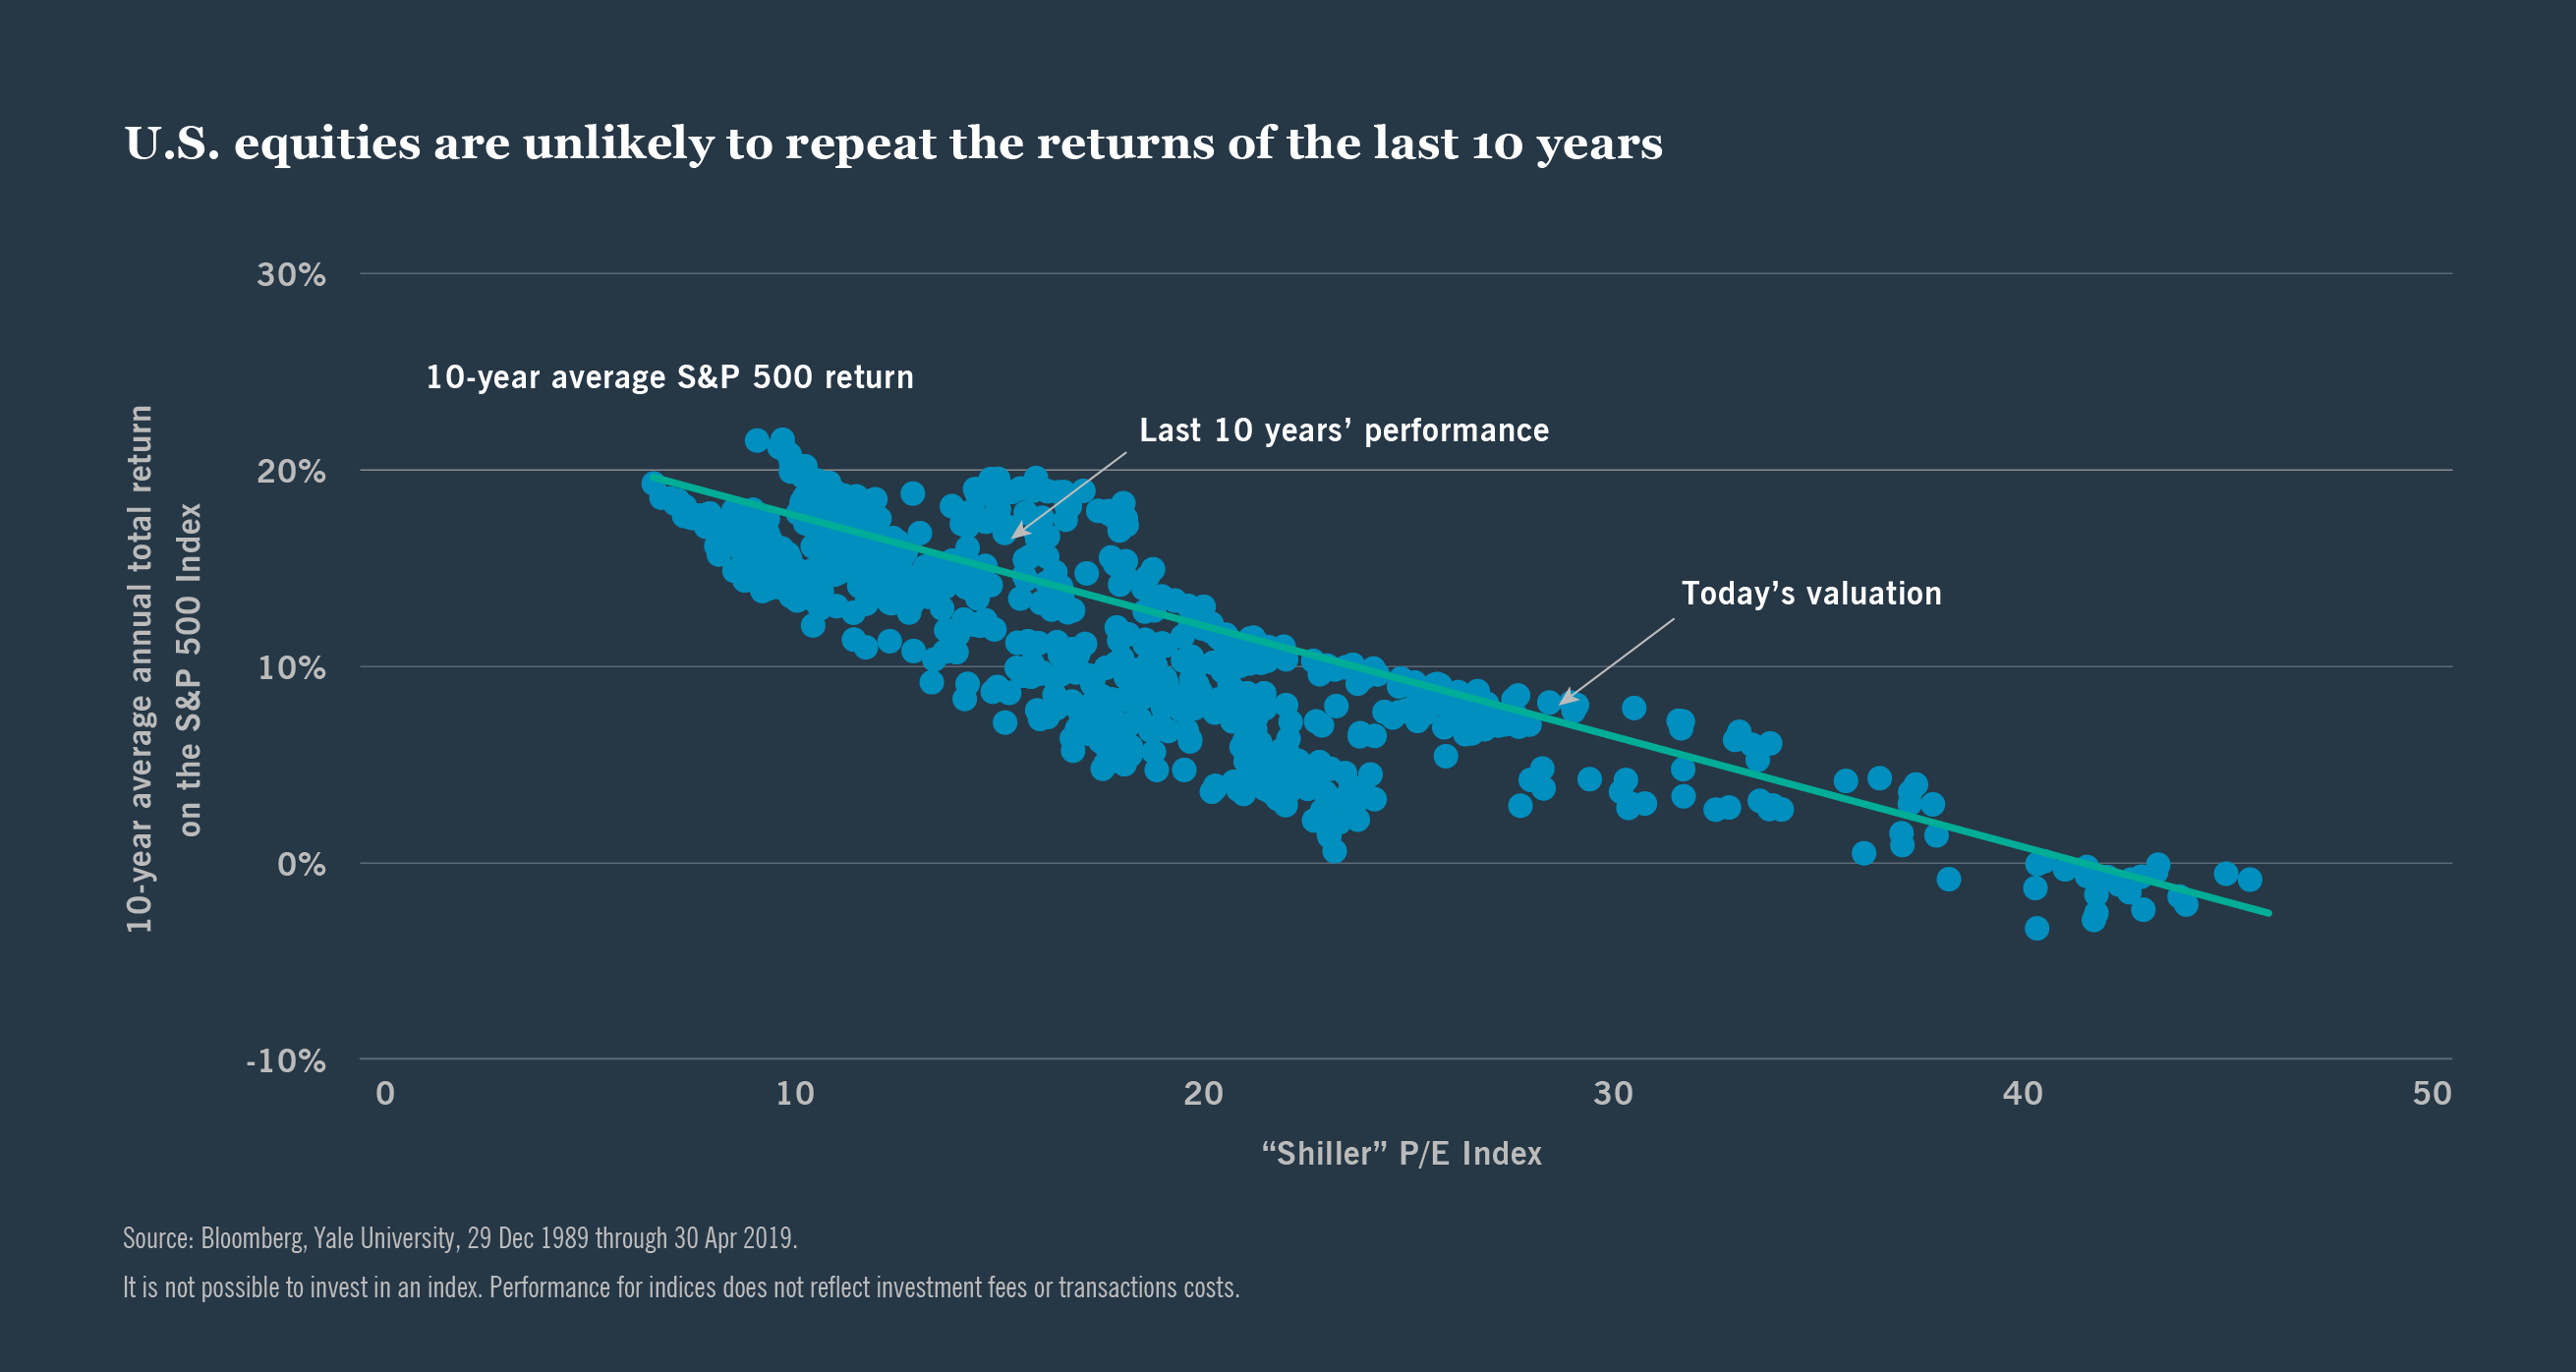 Chart: U.S equities are unlikely to repeat the returns of the last 10 years